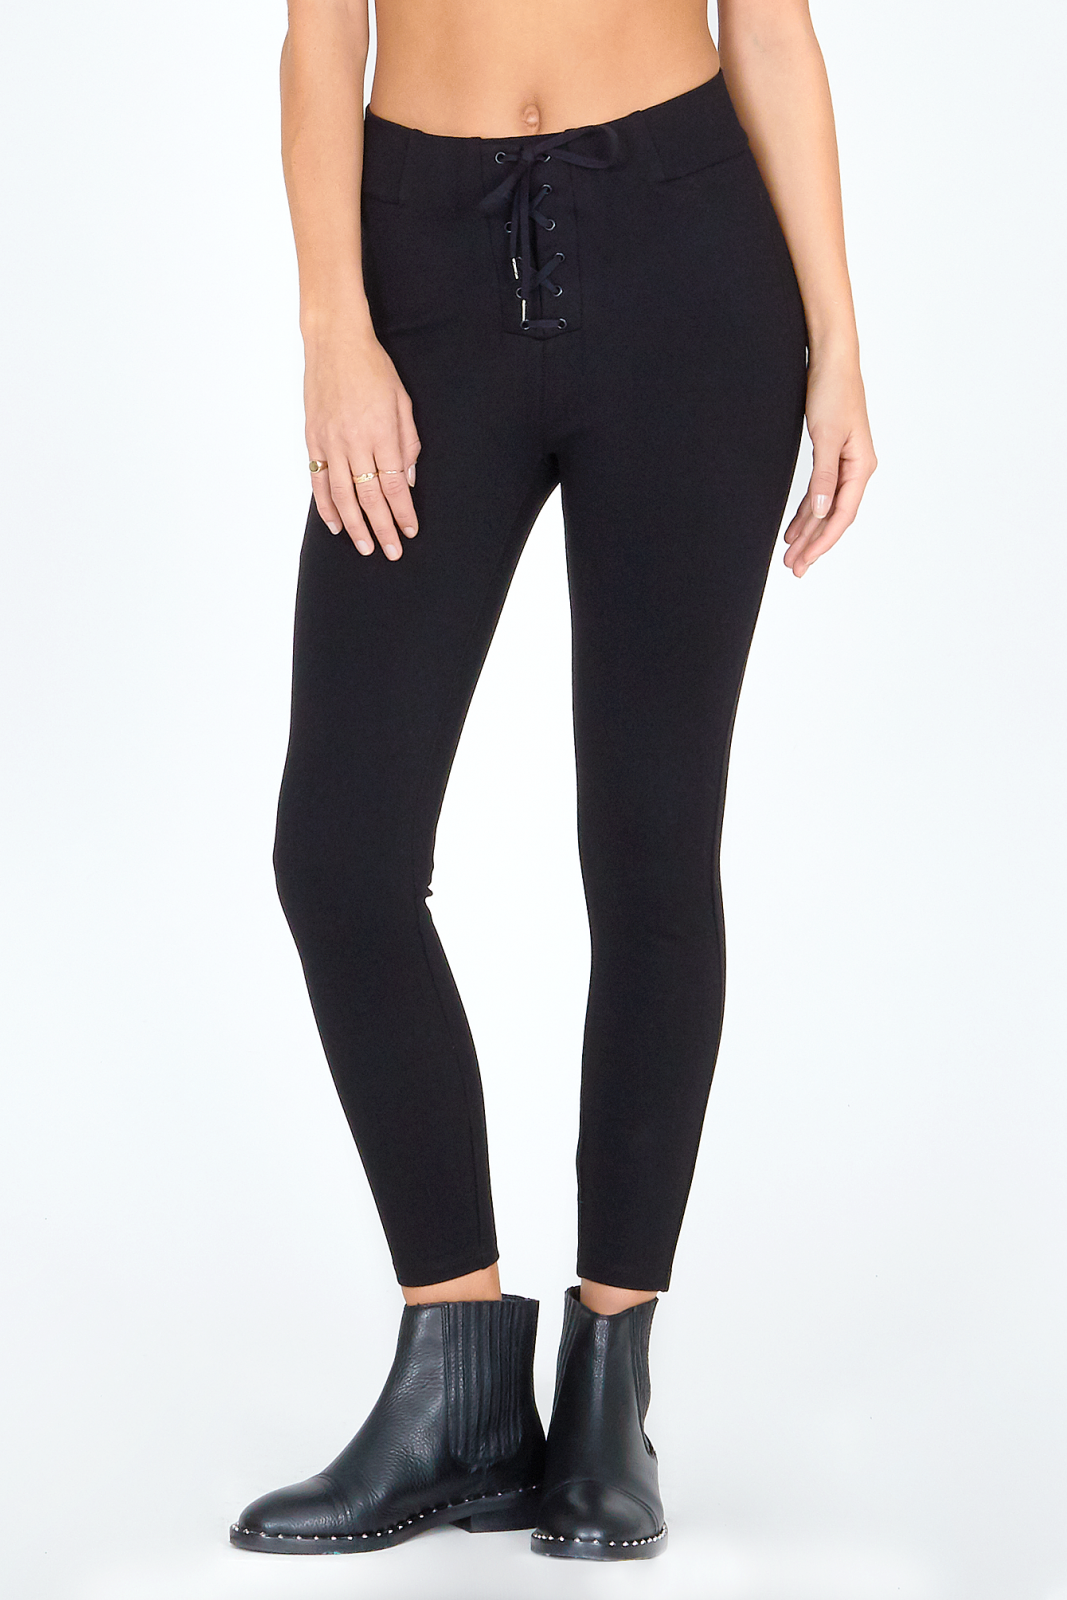 Amuse Society Middle Of The Road Pant Black Sands